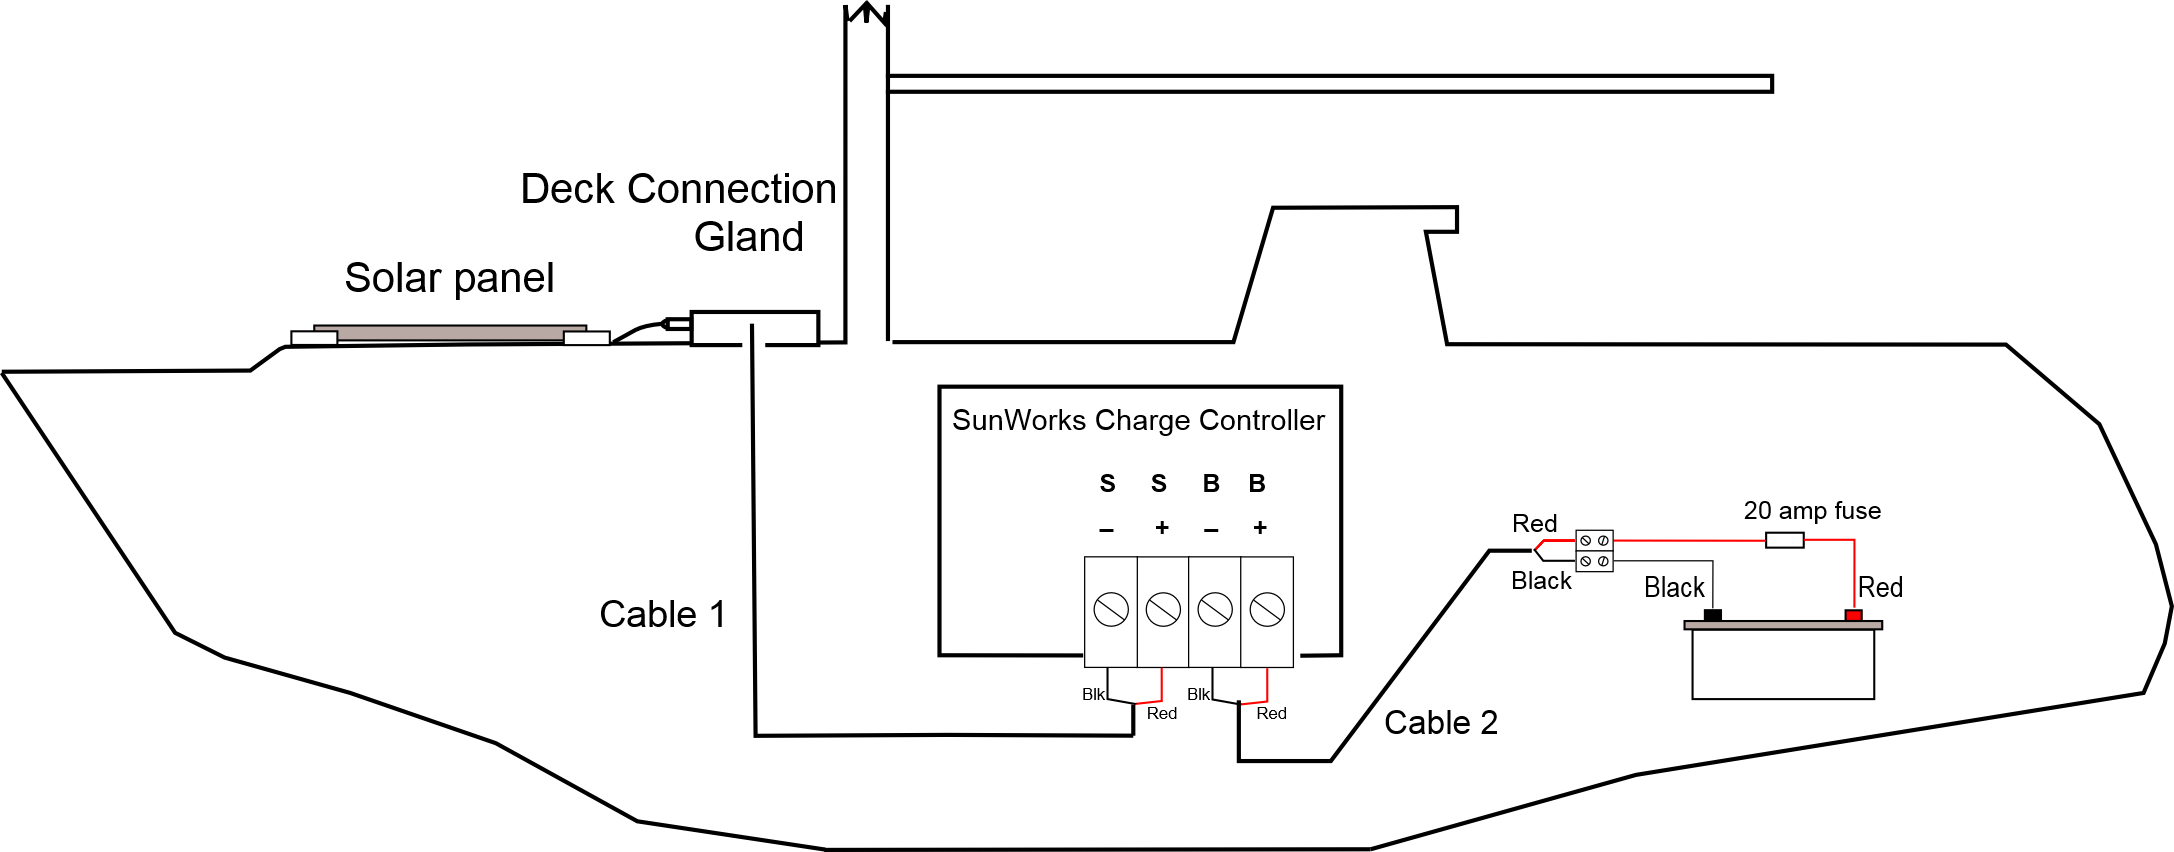 Solar Panel Wiring Diagrams Schematics Marine Ac Diagram Charge Controller With Lcd 15 Amps 240 Watts Panels 12v Dc